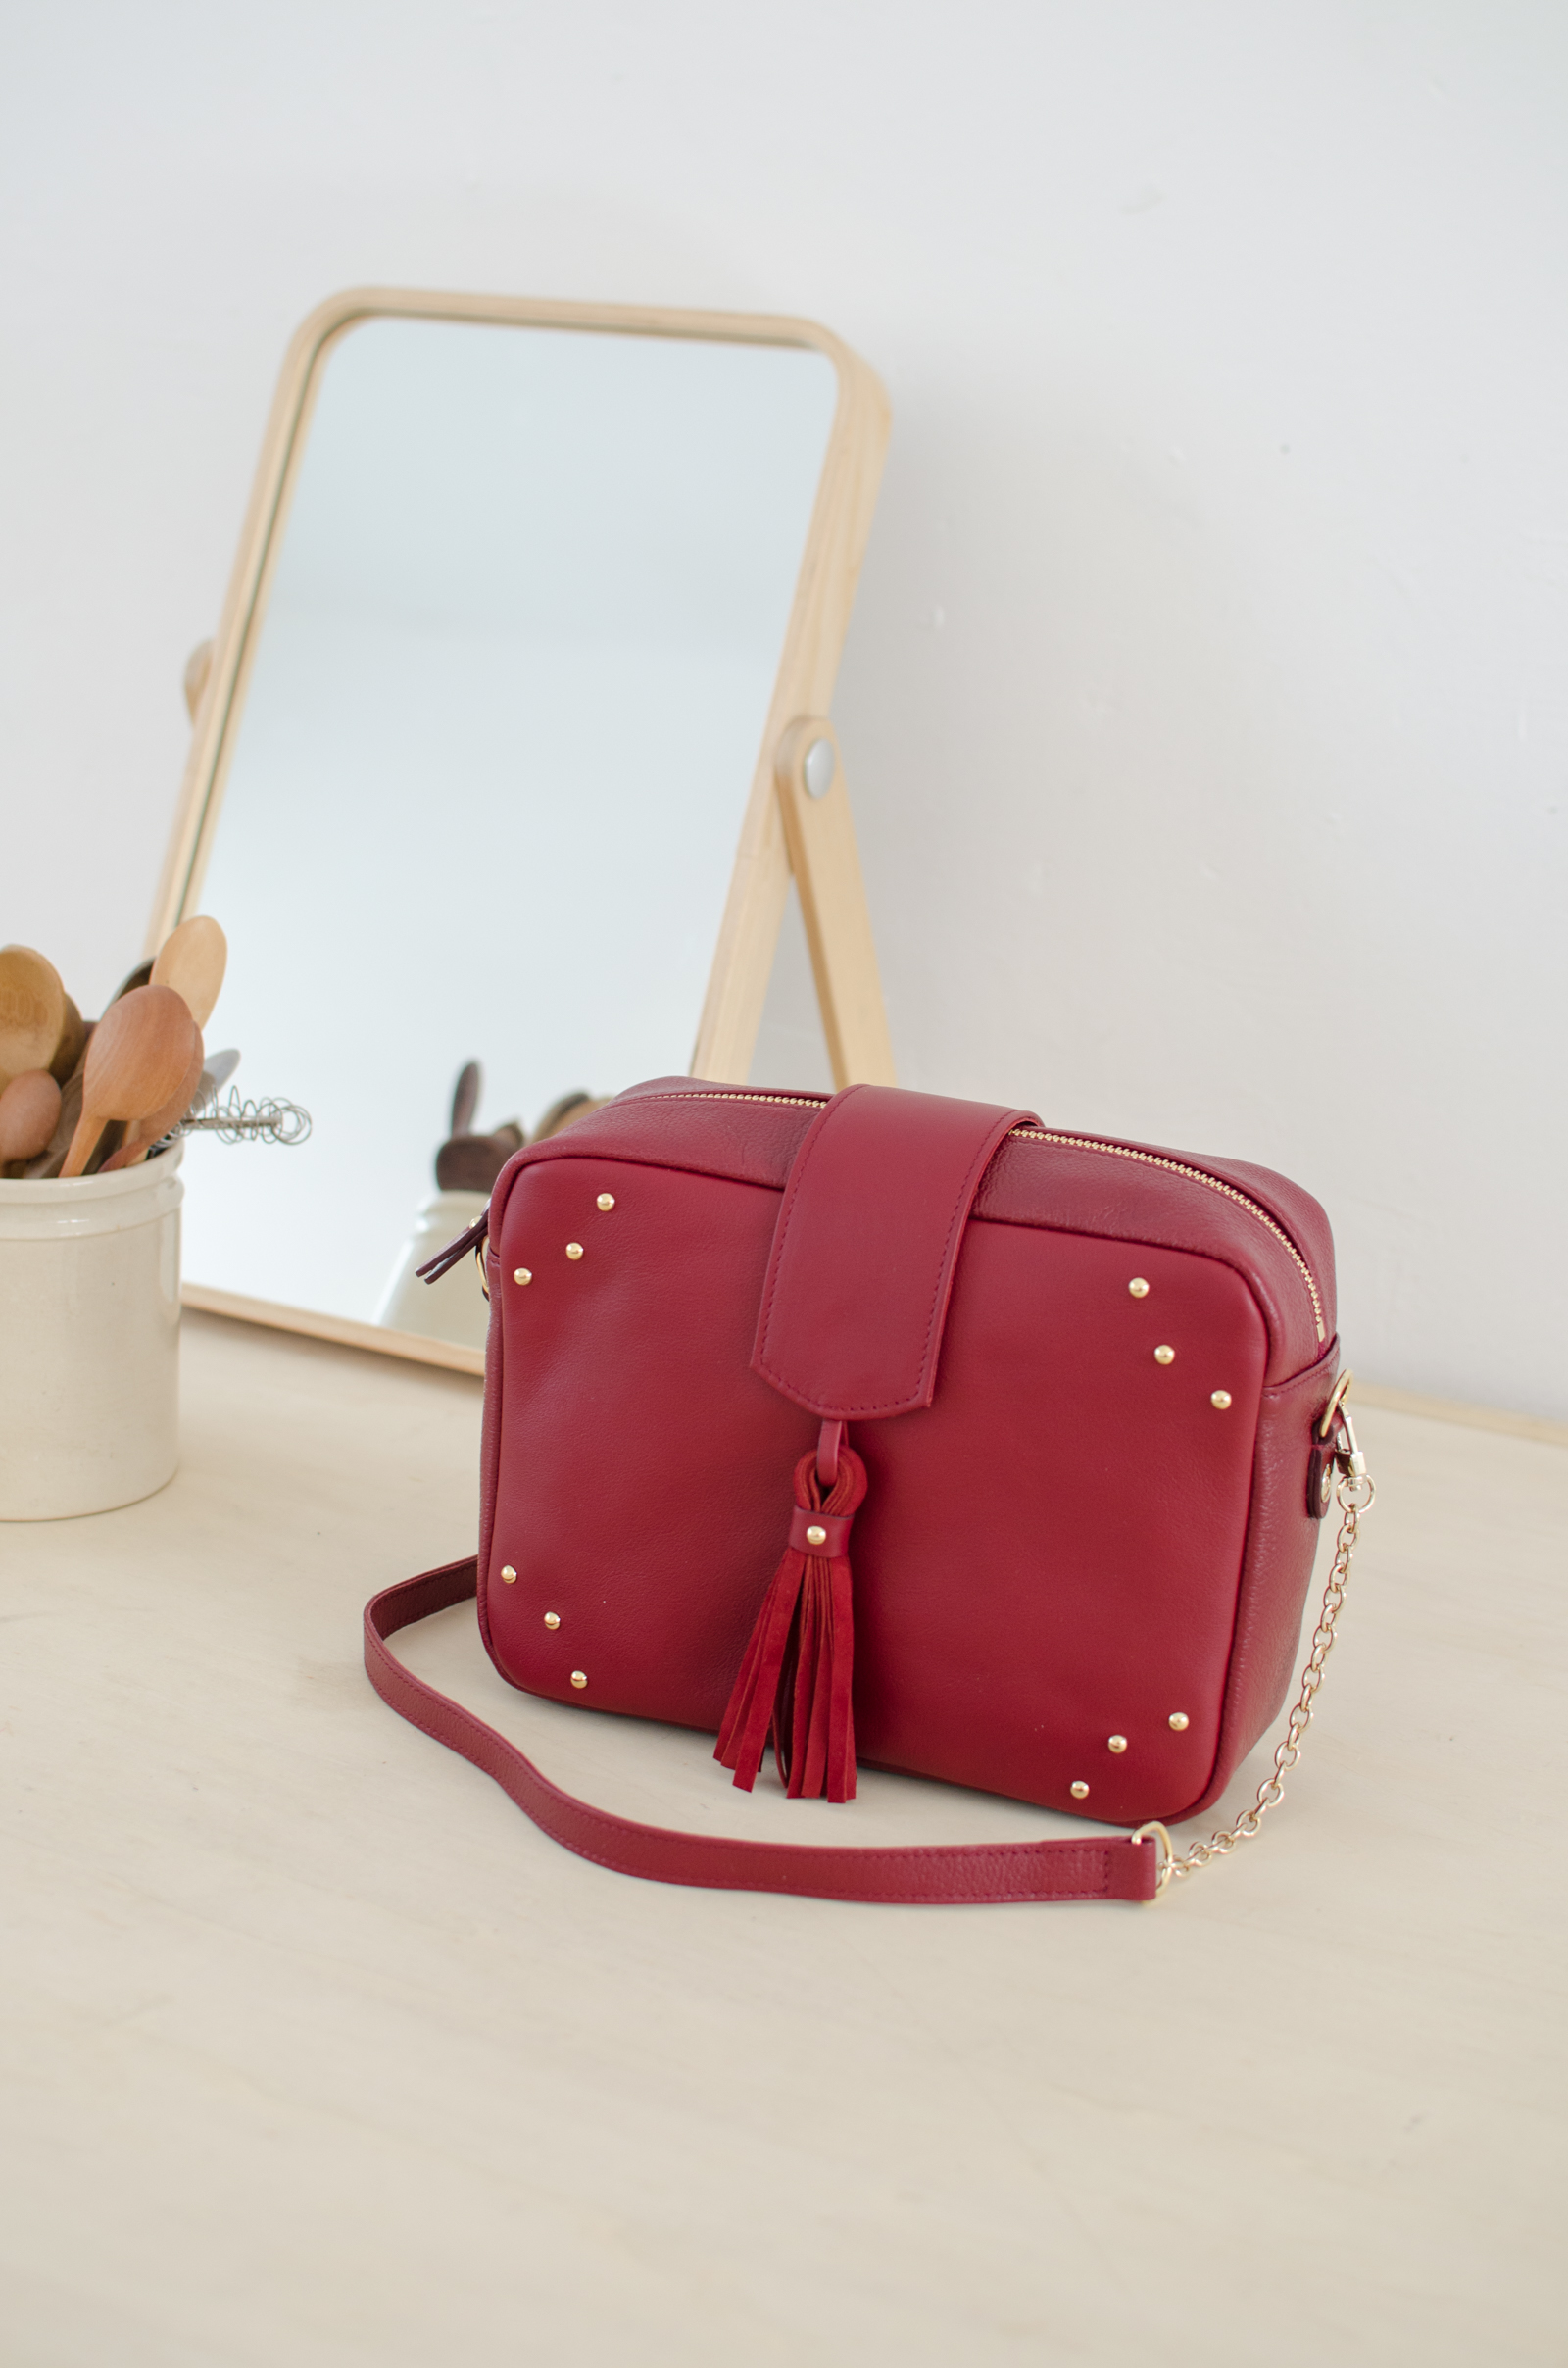 sac atelier amand divin cramberry 6